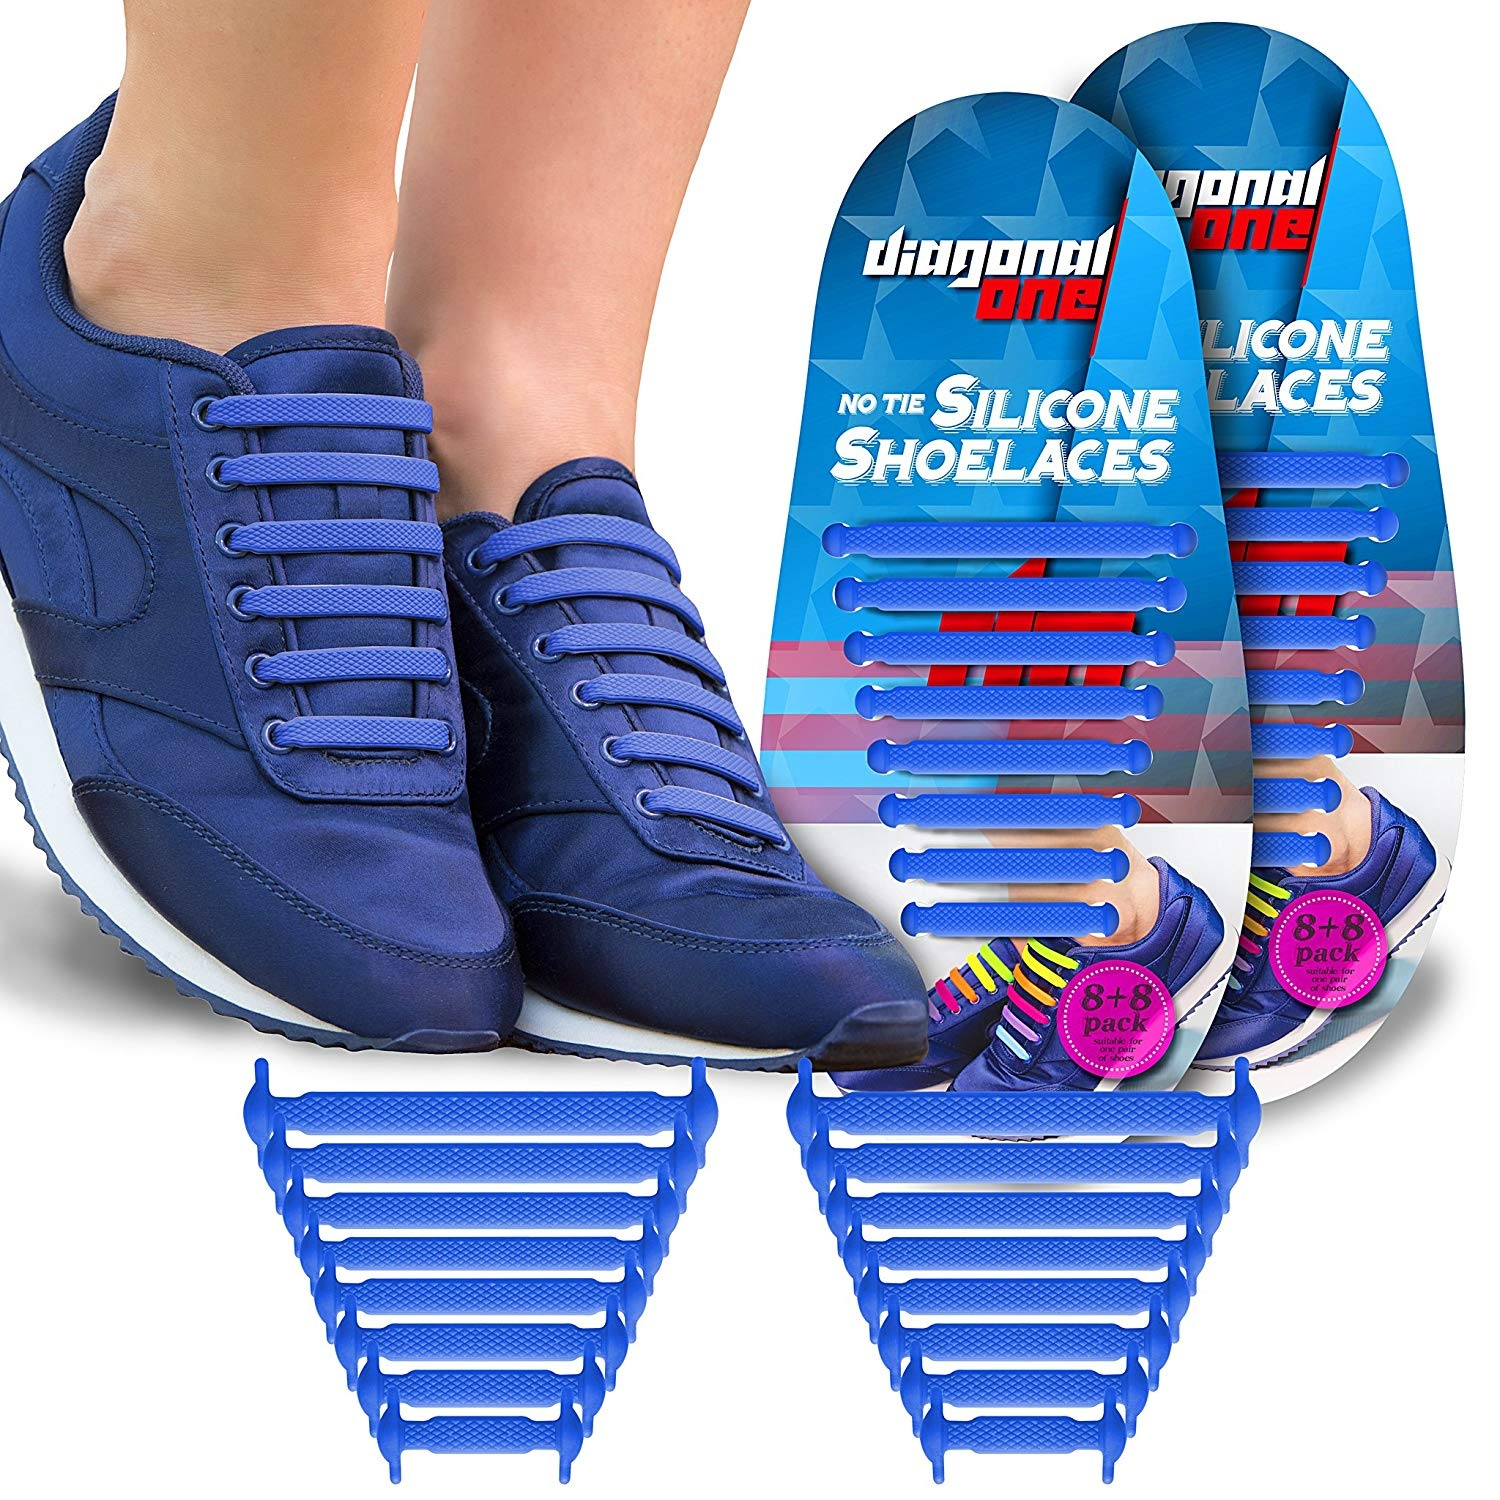 25c76972c1 Diagonal One No Tie Shoelaces for Kids   Adults. The Elastic ...